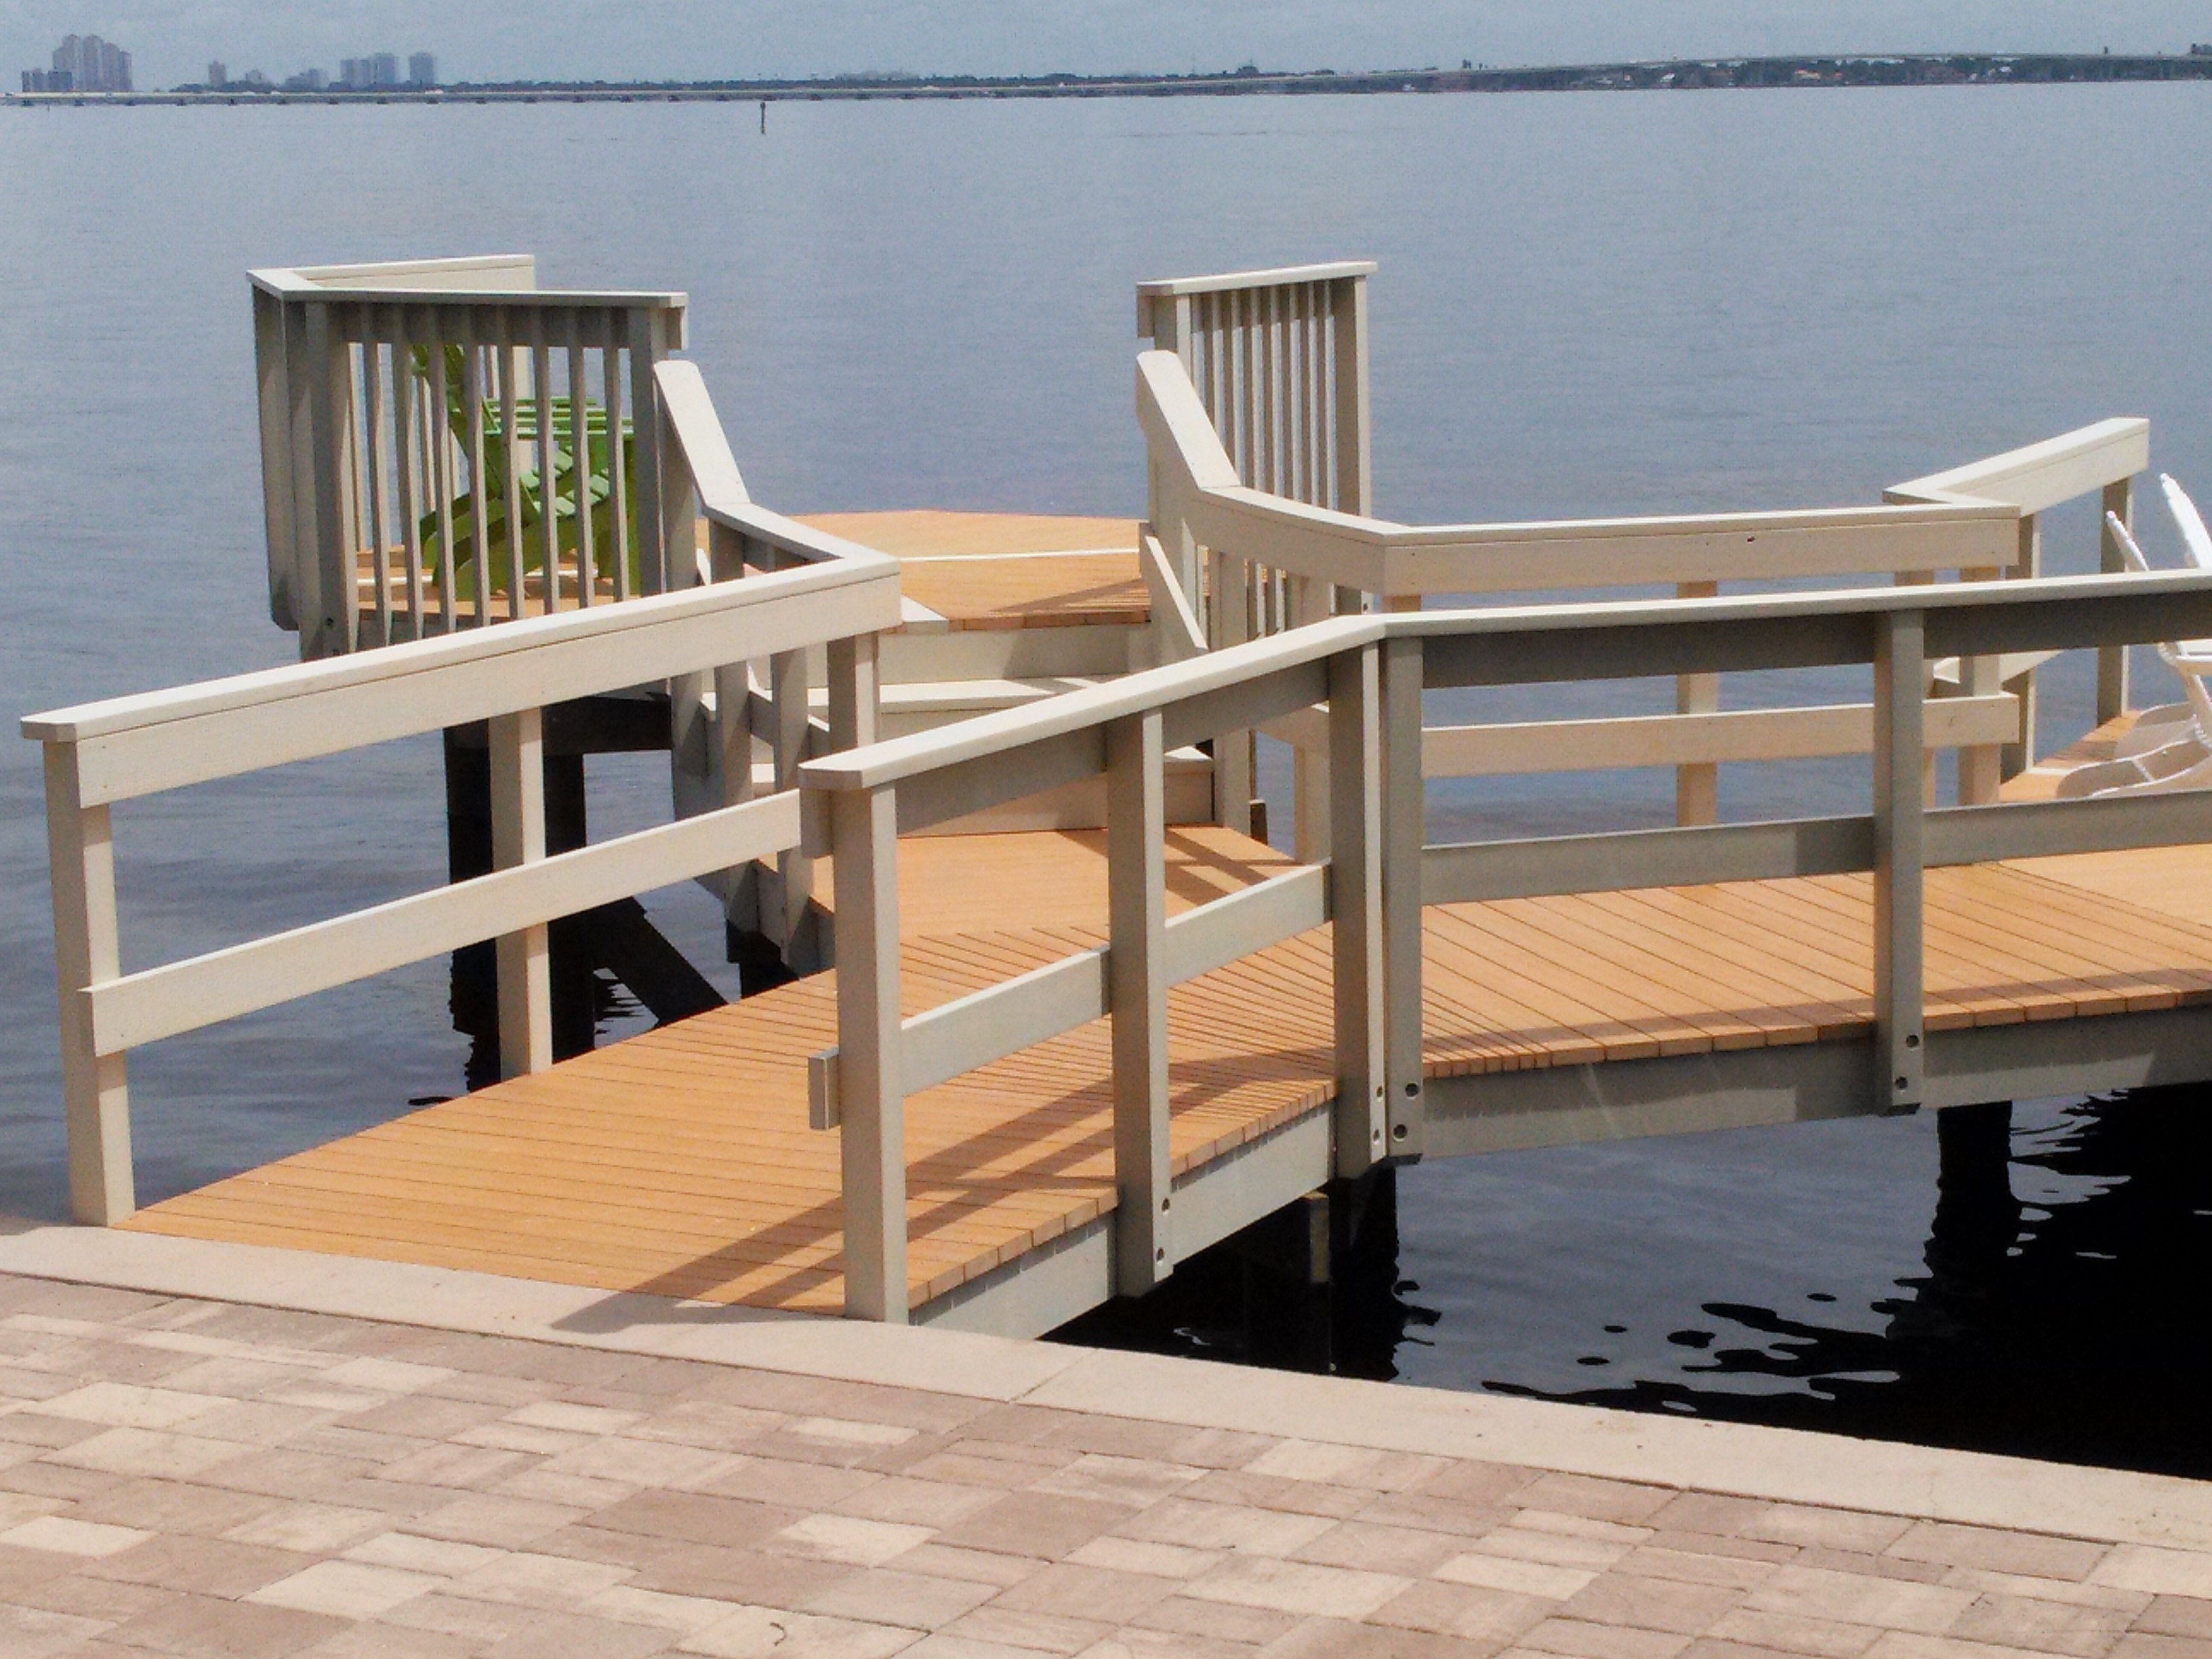 Keys Deck & Dock Supply image 2